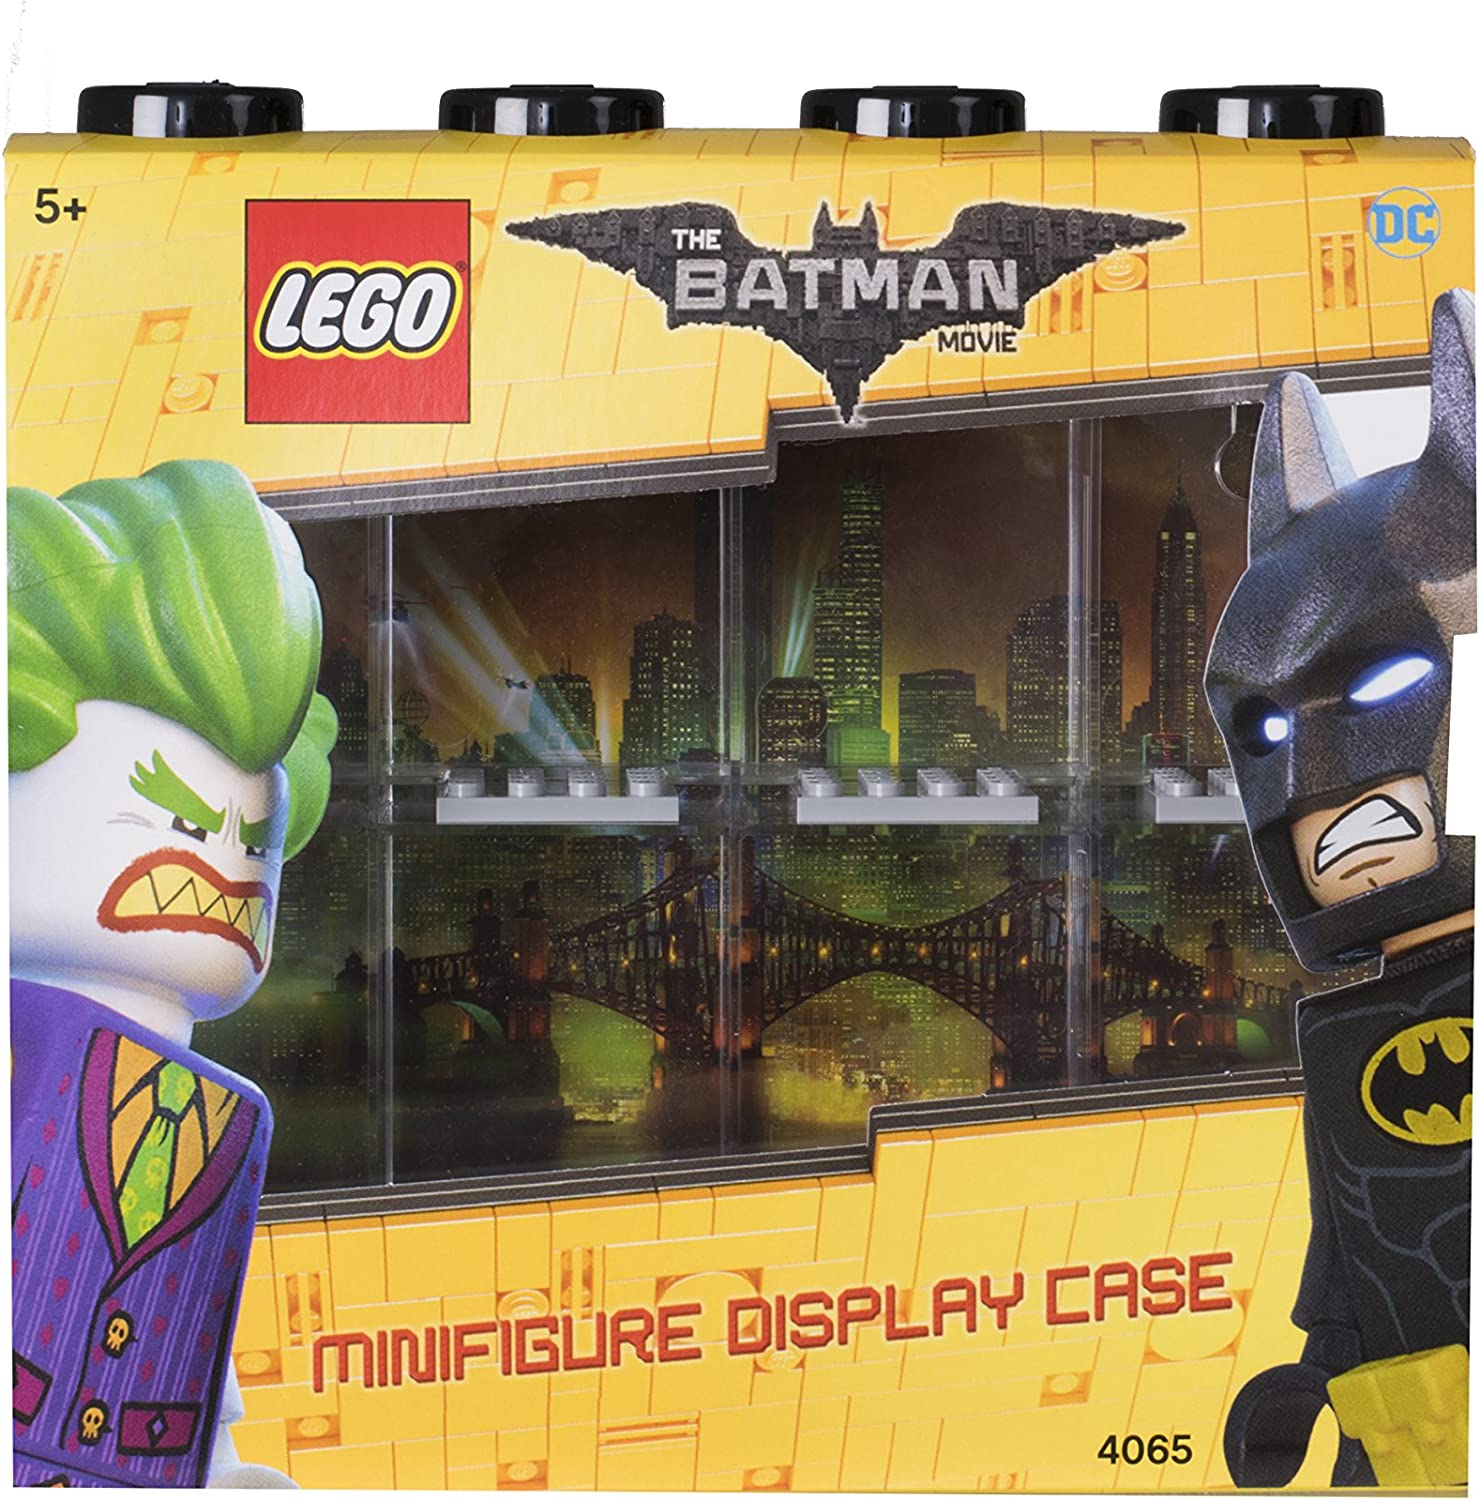 LEGO Batman Minifigure Display Case for 8 Minifigures, Stackable Container for Wall or Desk - Black